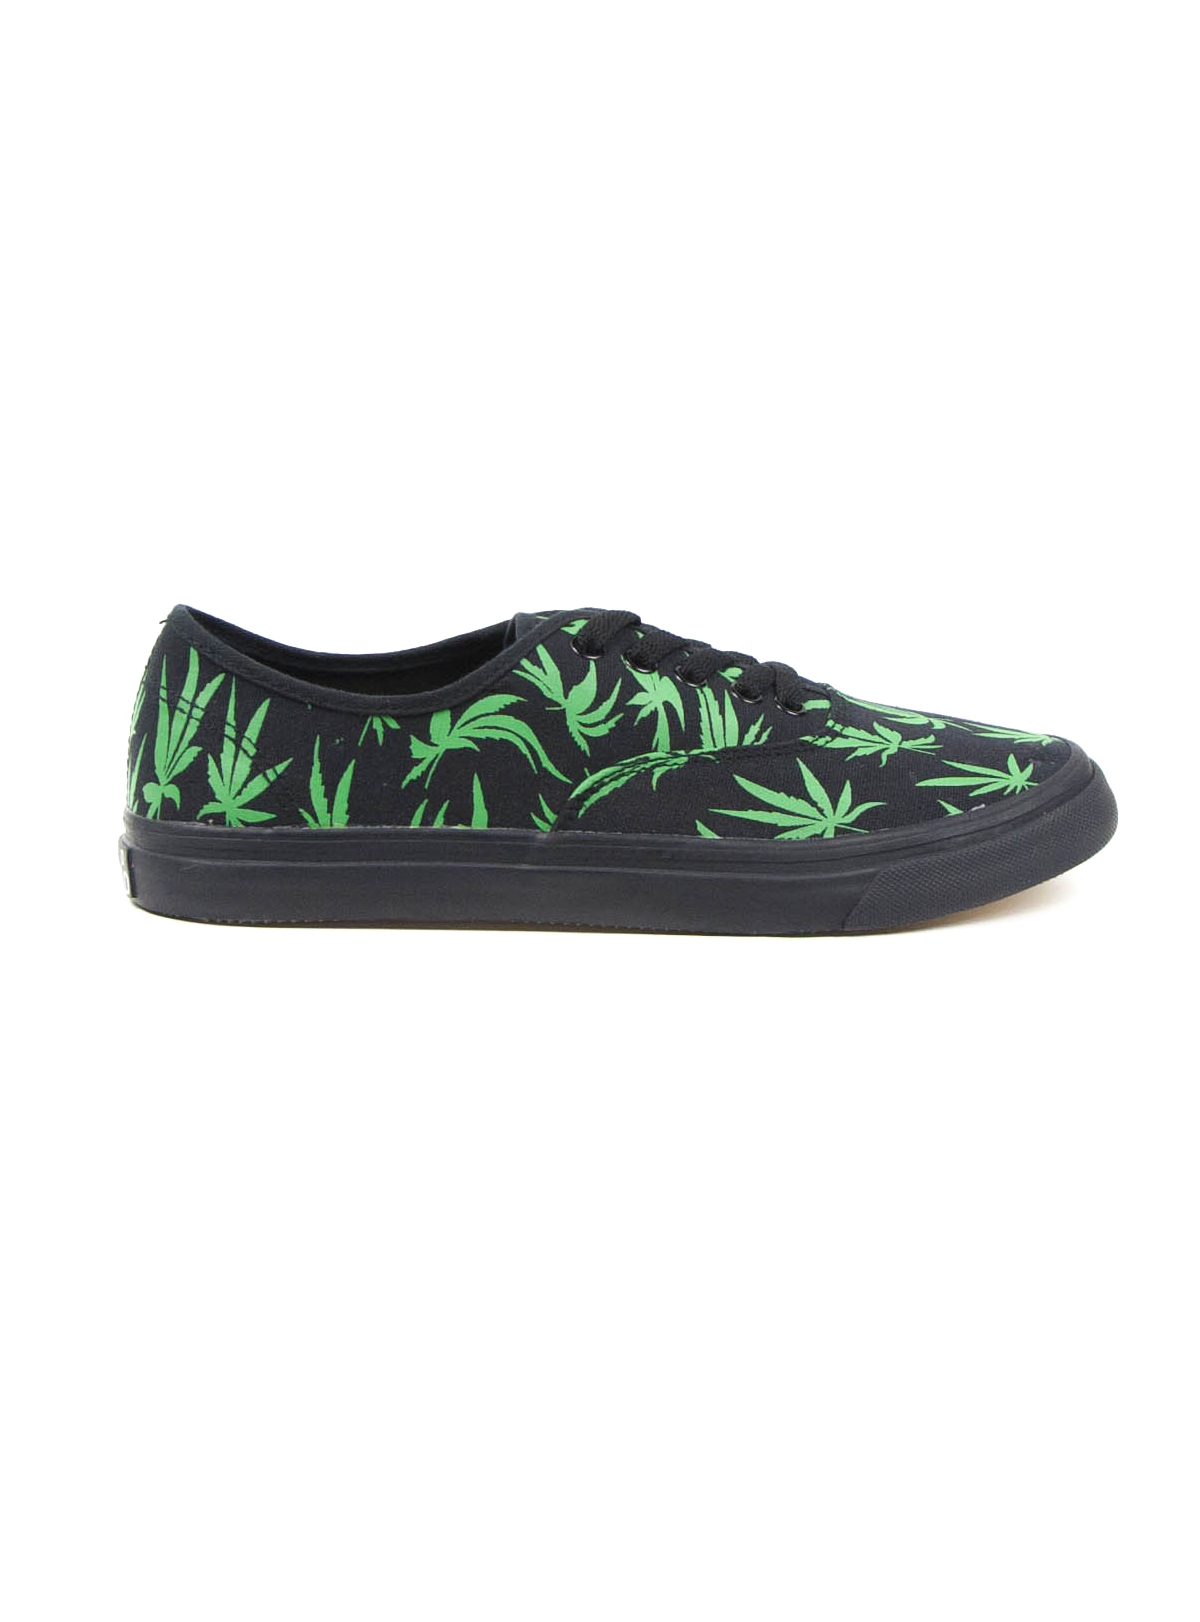 Weed Swirl Shoe: Bad Acid Sucks